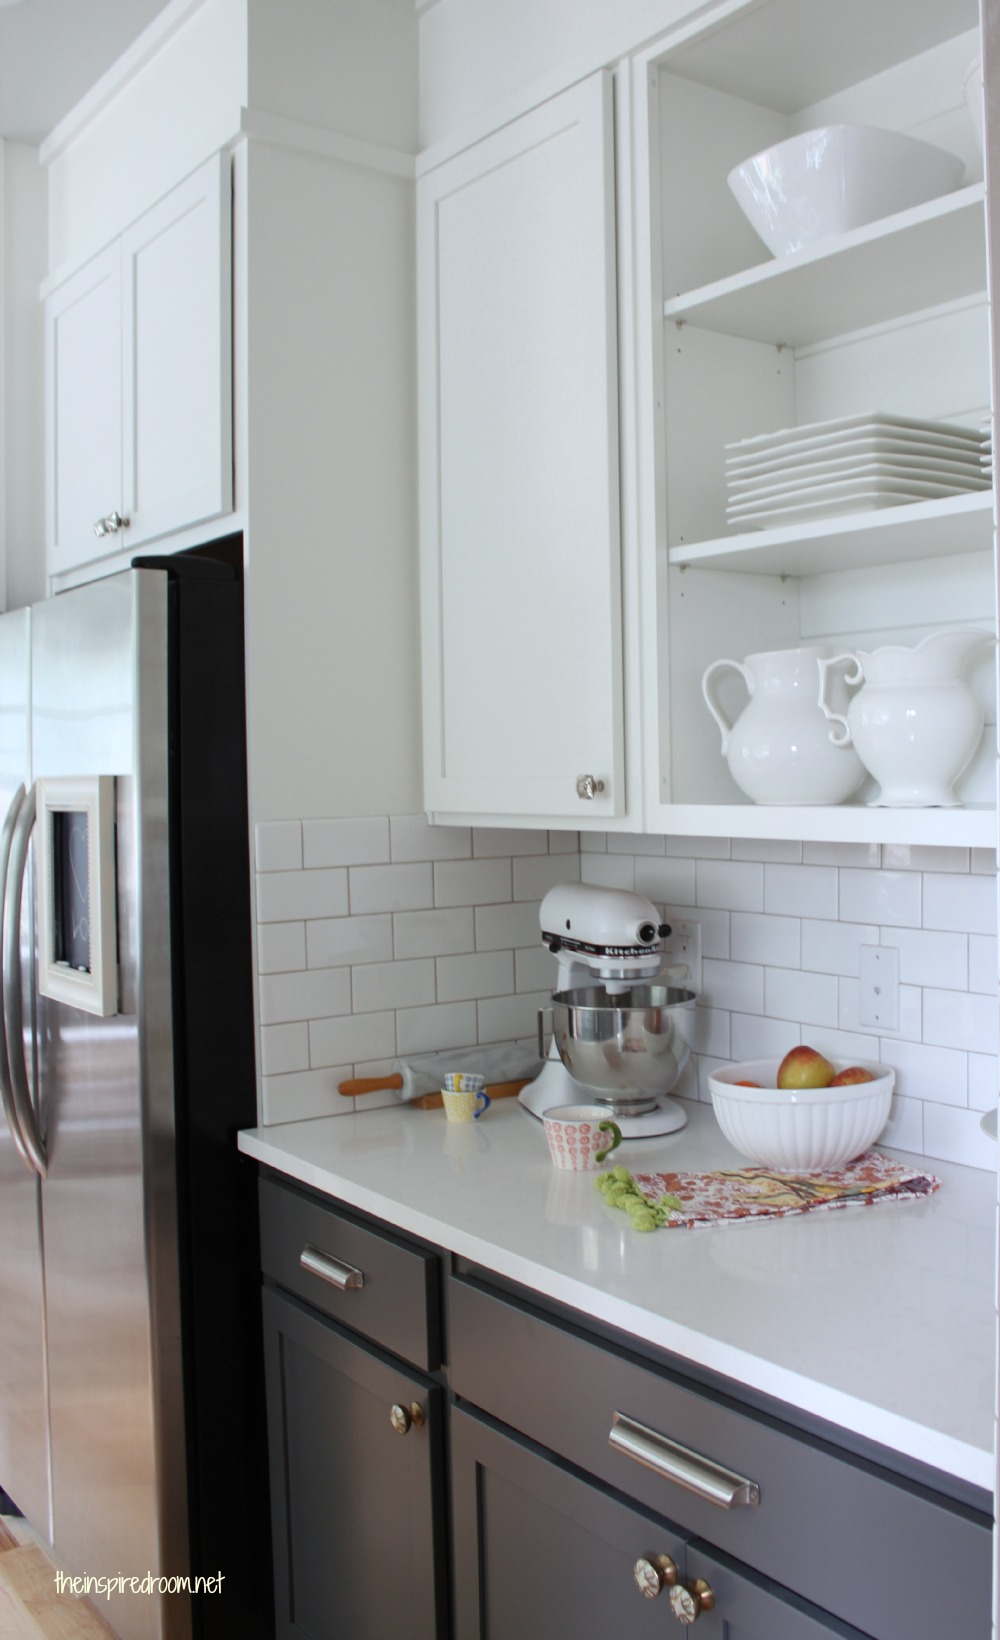 how to do a total kitchen reno for under $6,000 - mrs. fancee